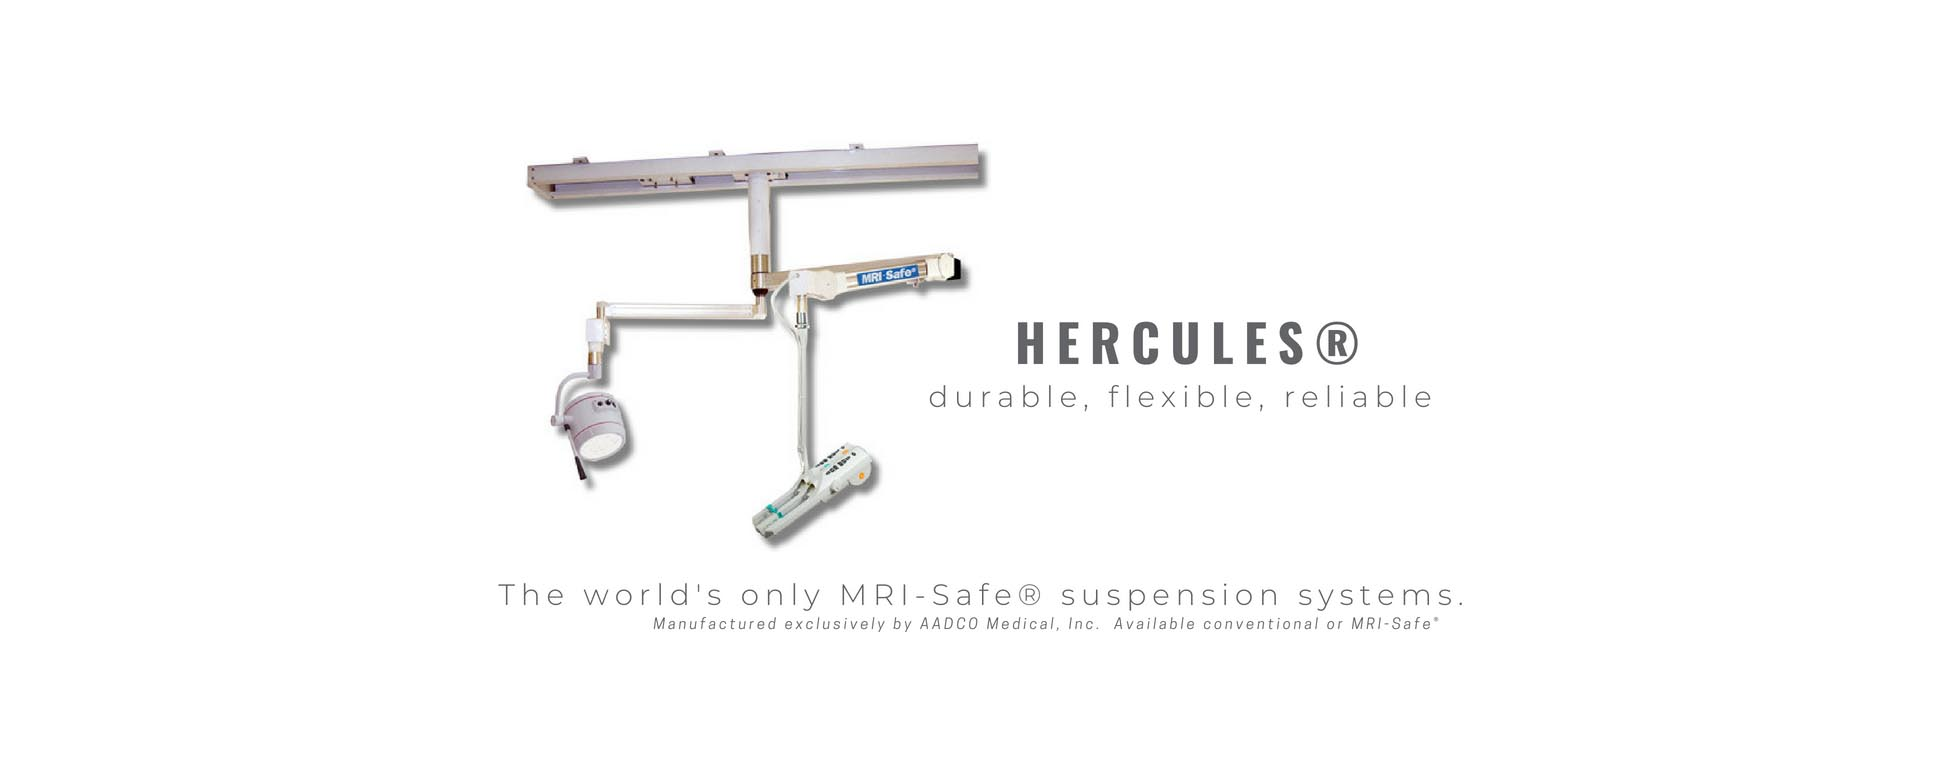 Lifts Booms Equipment Suspension Medical Equipment Suspension Overhead System Medical Lighting System MRI Equipment System